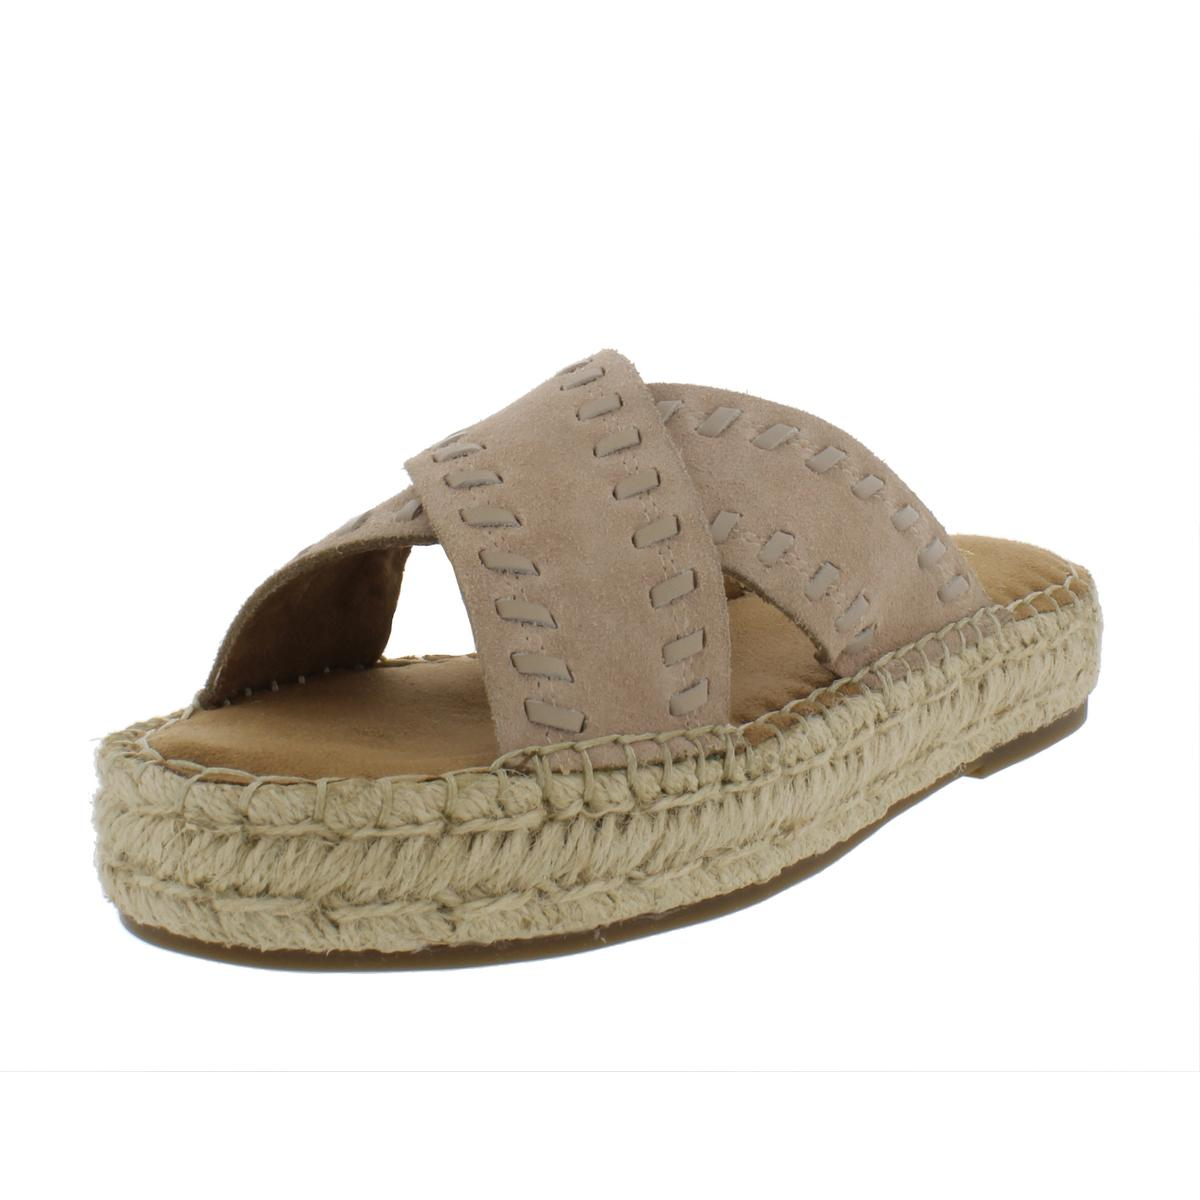 24c772082da0 Details about Aerosoles Womens Rose Gold Flatform Sandals Leisure  Espadrilles Shoes BHFO 5875